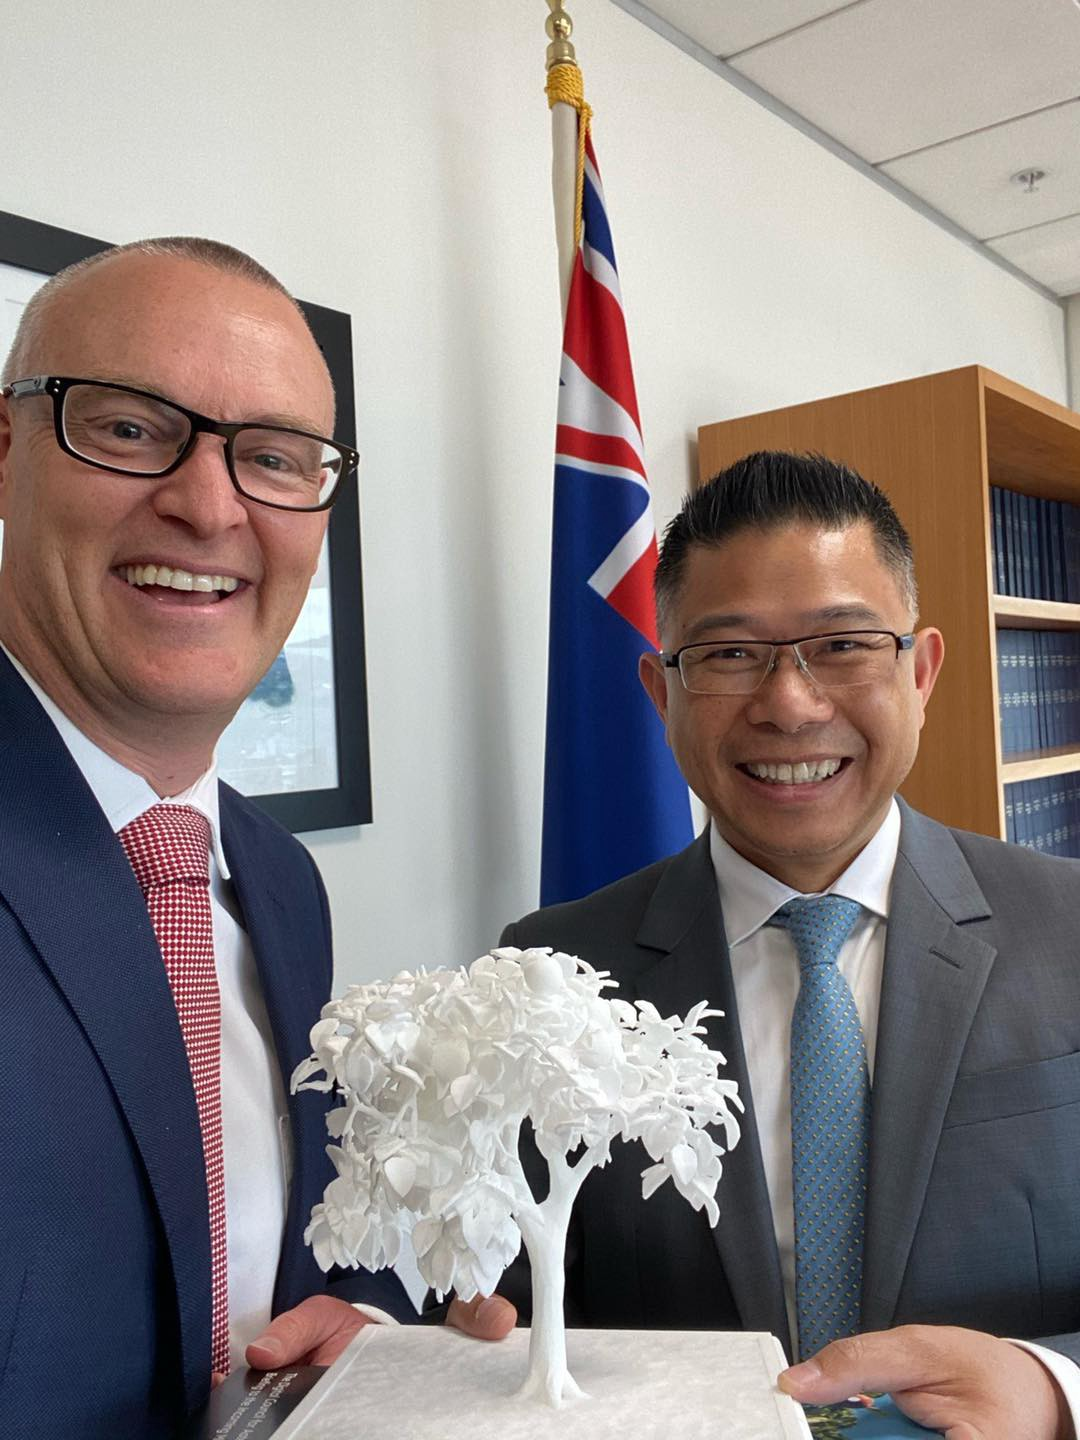 Hon Dr David Clark stands left with Mitchell Pham, right. Between them they hold a small, white 3D printed tree on a stand.